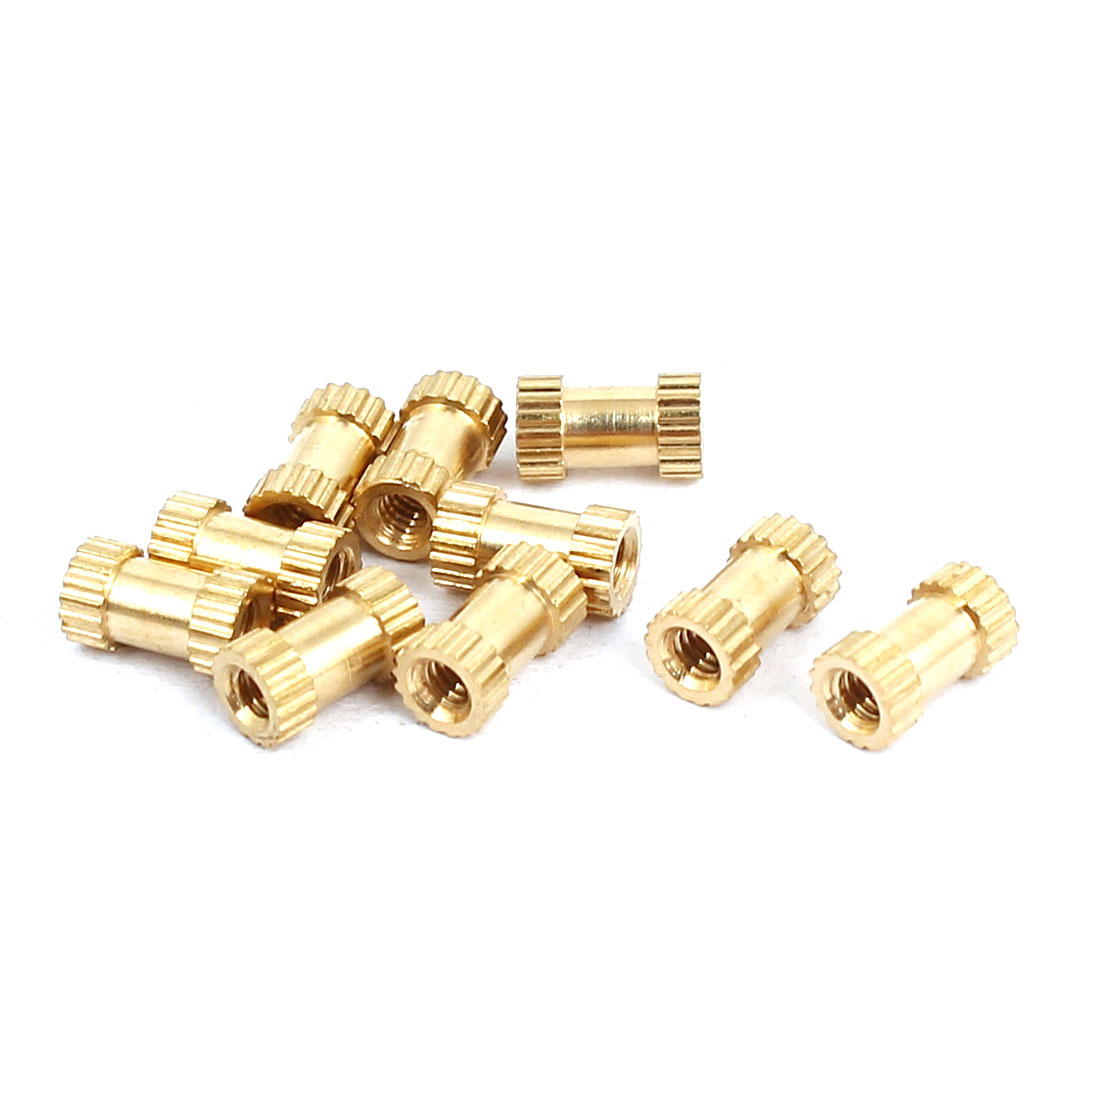 M2x6mmx3.5mm Female Threaded Brass Knurled Insert Embedded Nuts Gold Tone 10pcs